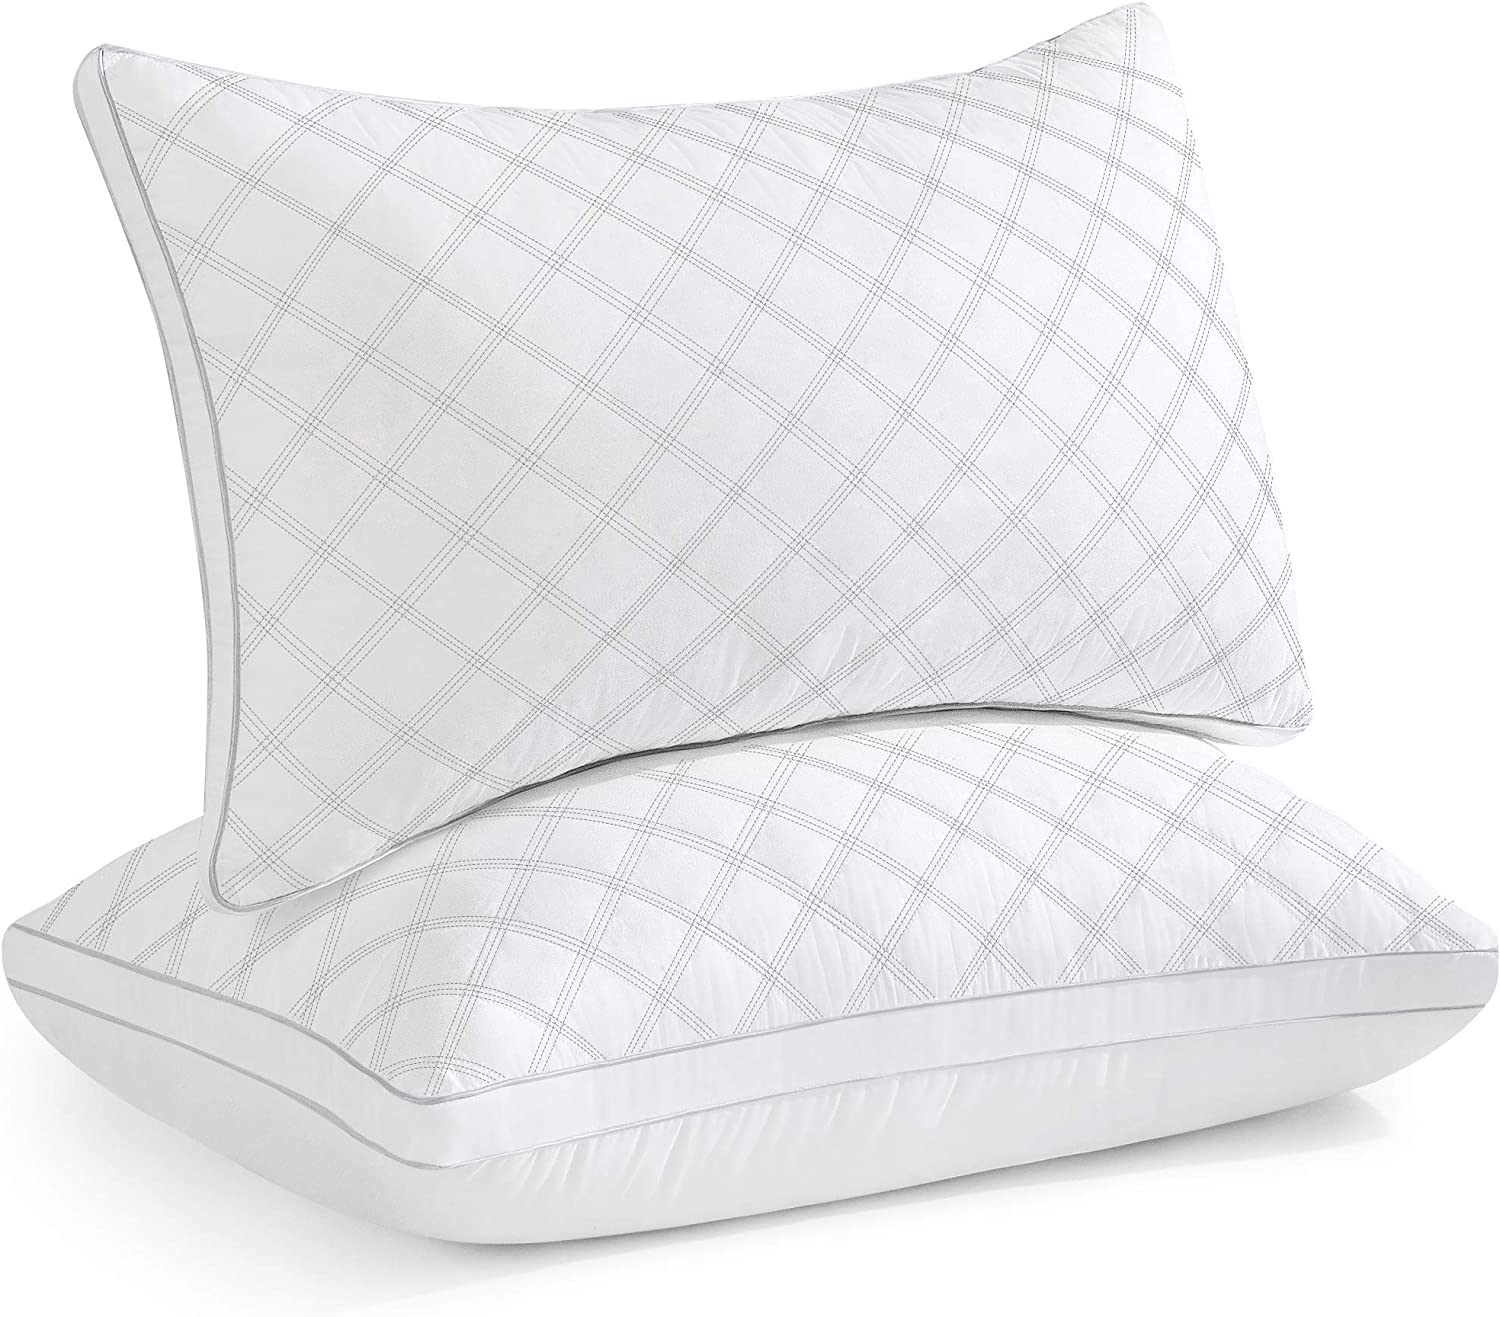 Oubonun Standard Size Pillows for Sleeping Set of 2, Down Alternative Pillows, Supportive Bed Pillow for Side Sleepers (Standard, 20 x 26 Inch, White Side)